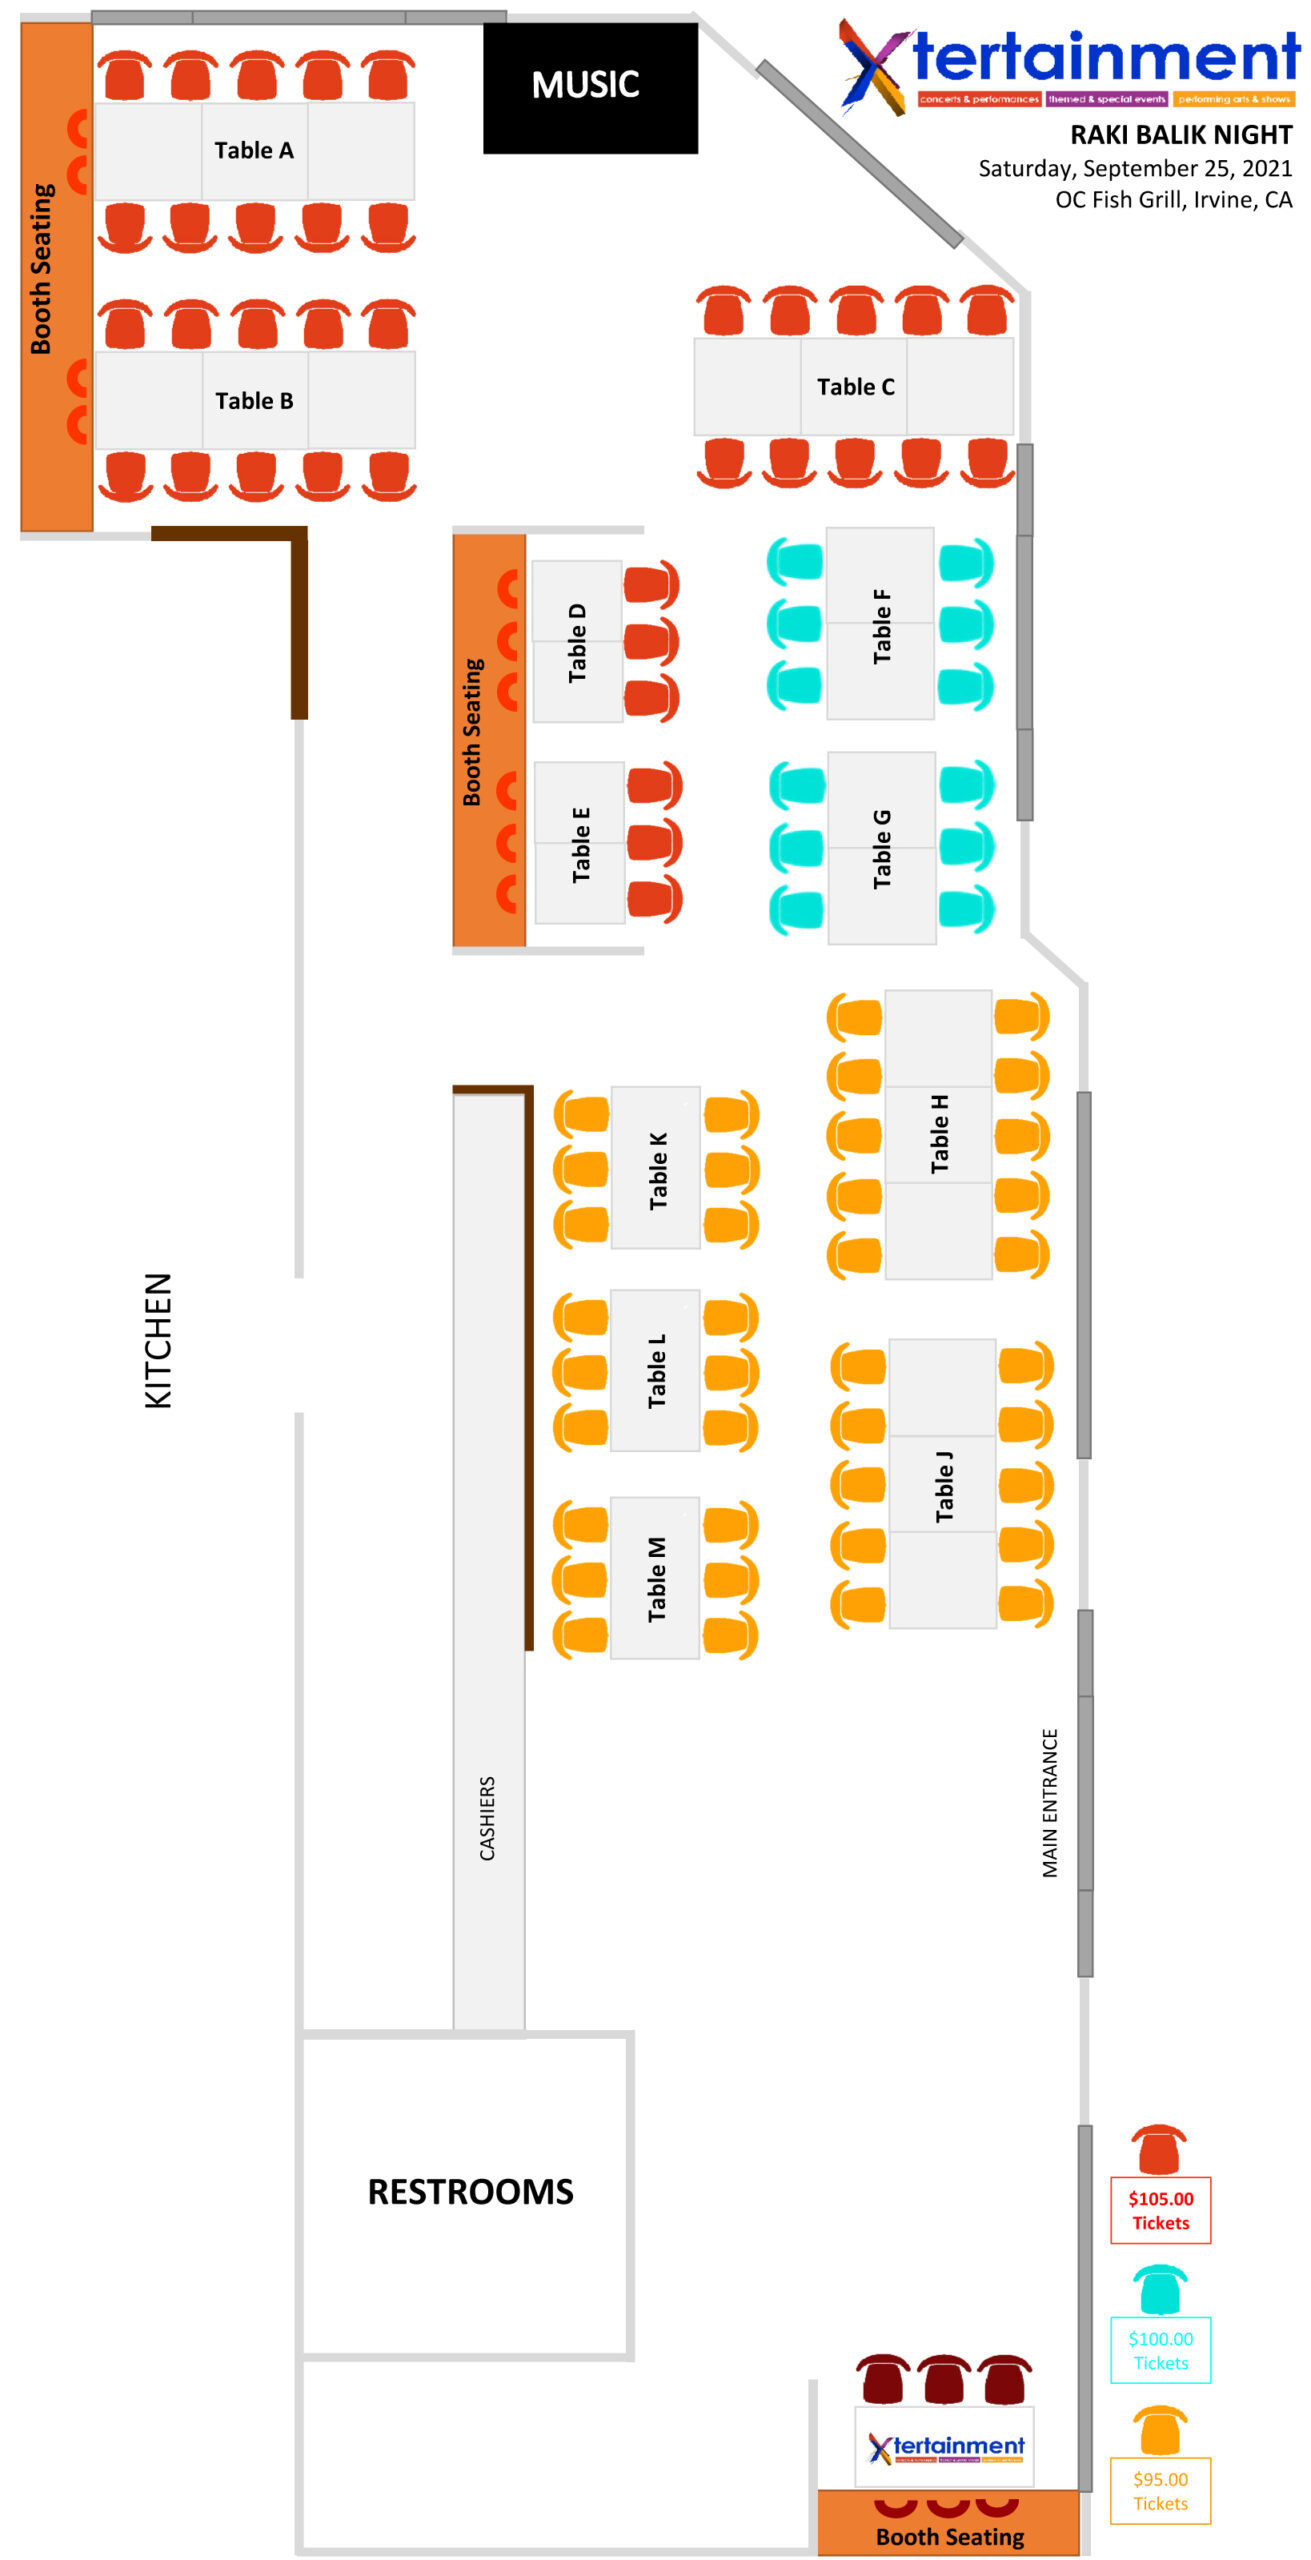 OC Fish Grill Seating Chart